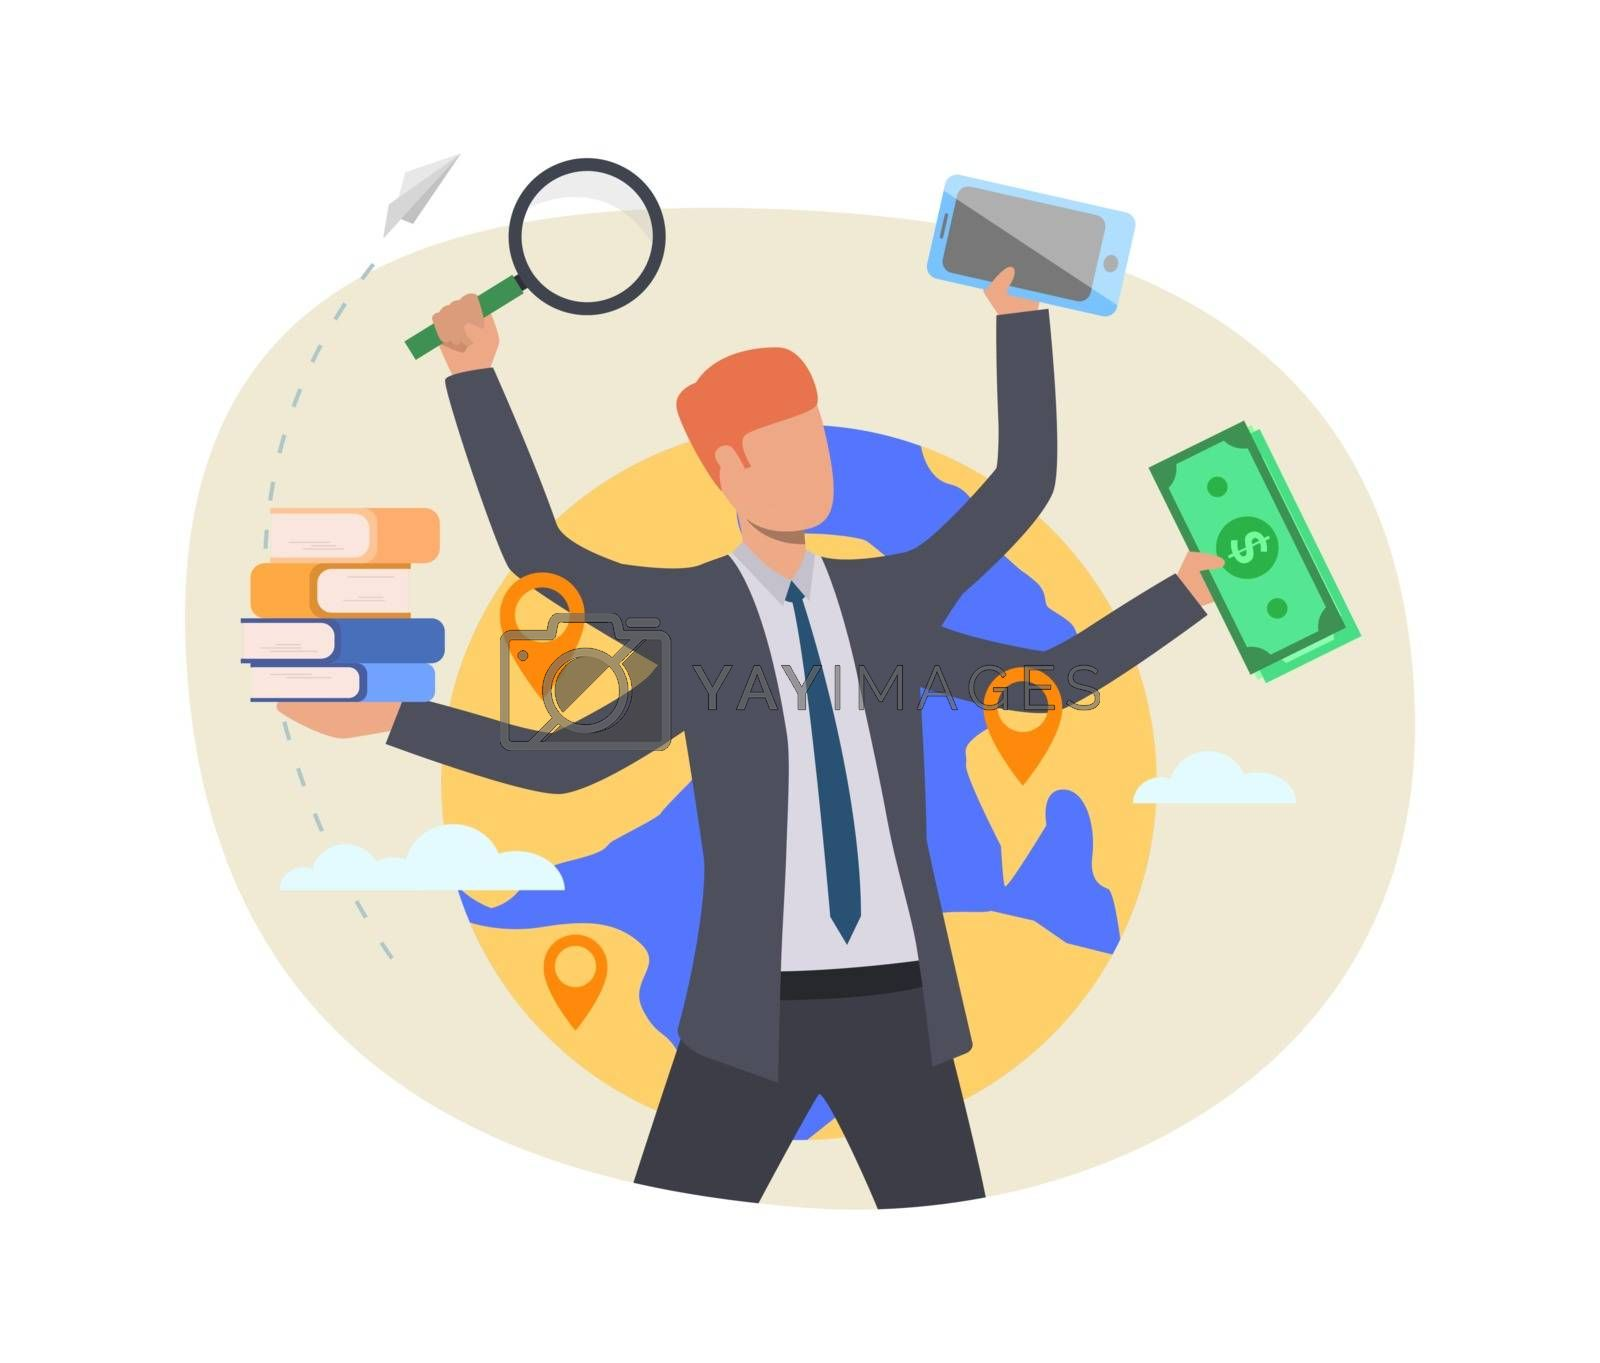 Busy professional illustration. Businessman holding money, books, magnifying glass, smartphone. Multitasking concept. Vector illustration for topics like business, lifestyle, stress